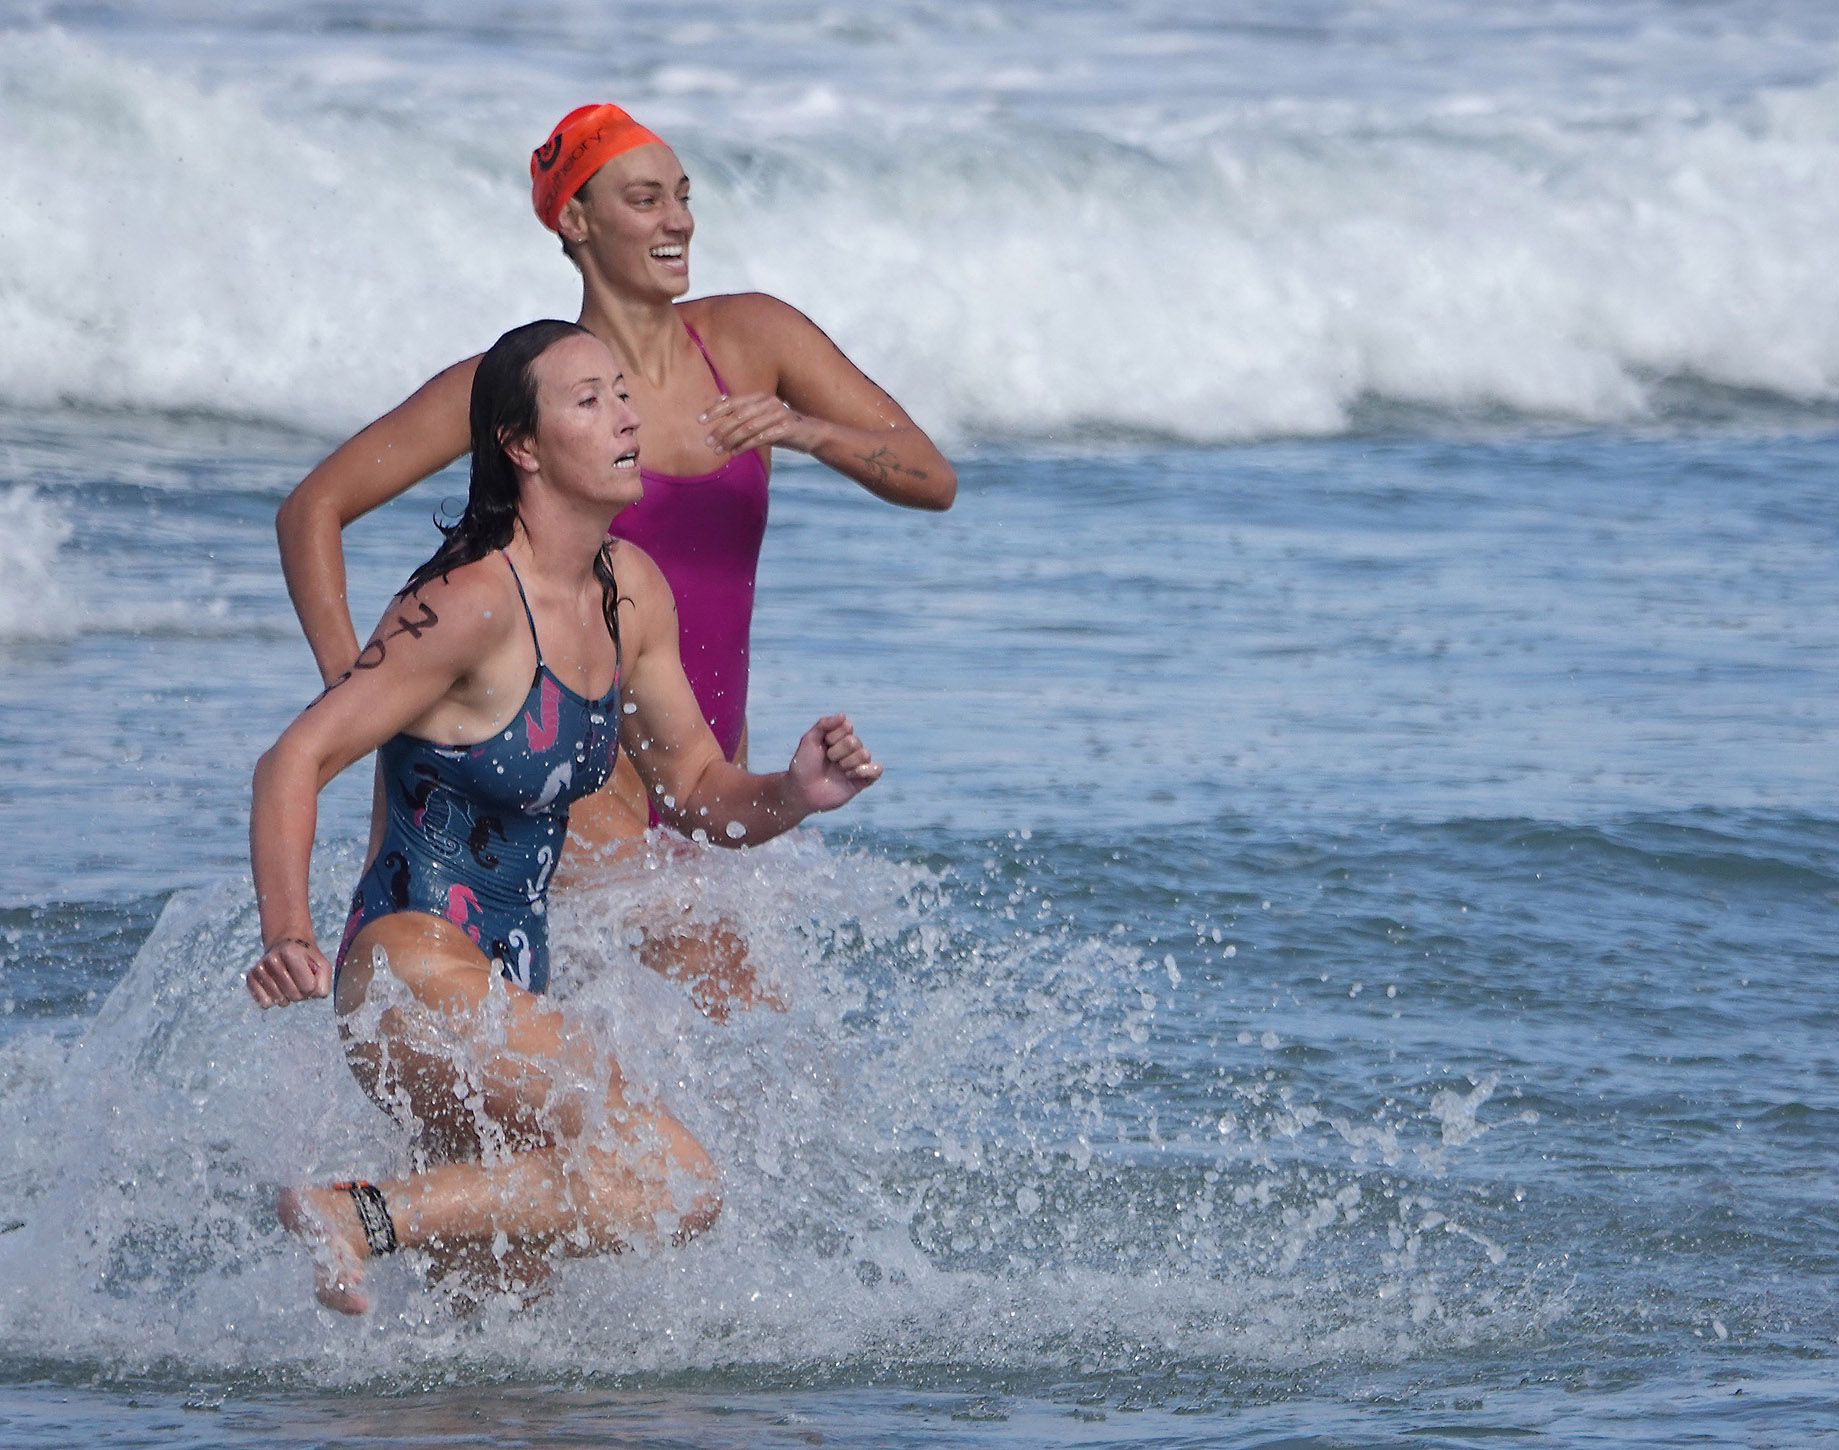 Competitors dash for the shoreline in a surf race at the San Clemente Ocean Festival. Photo: Fred Swegles